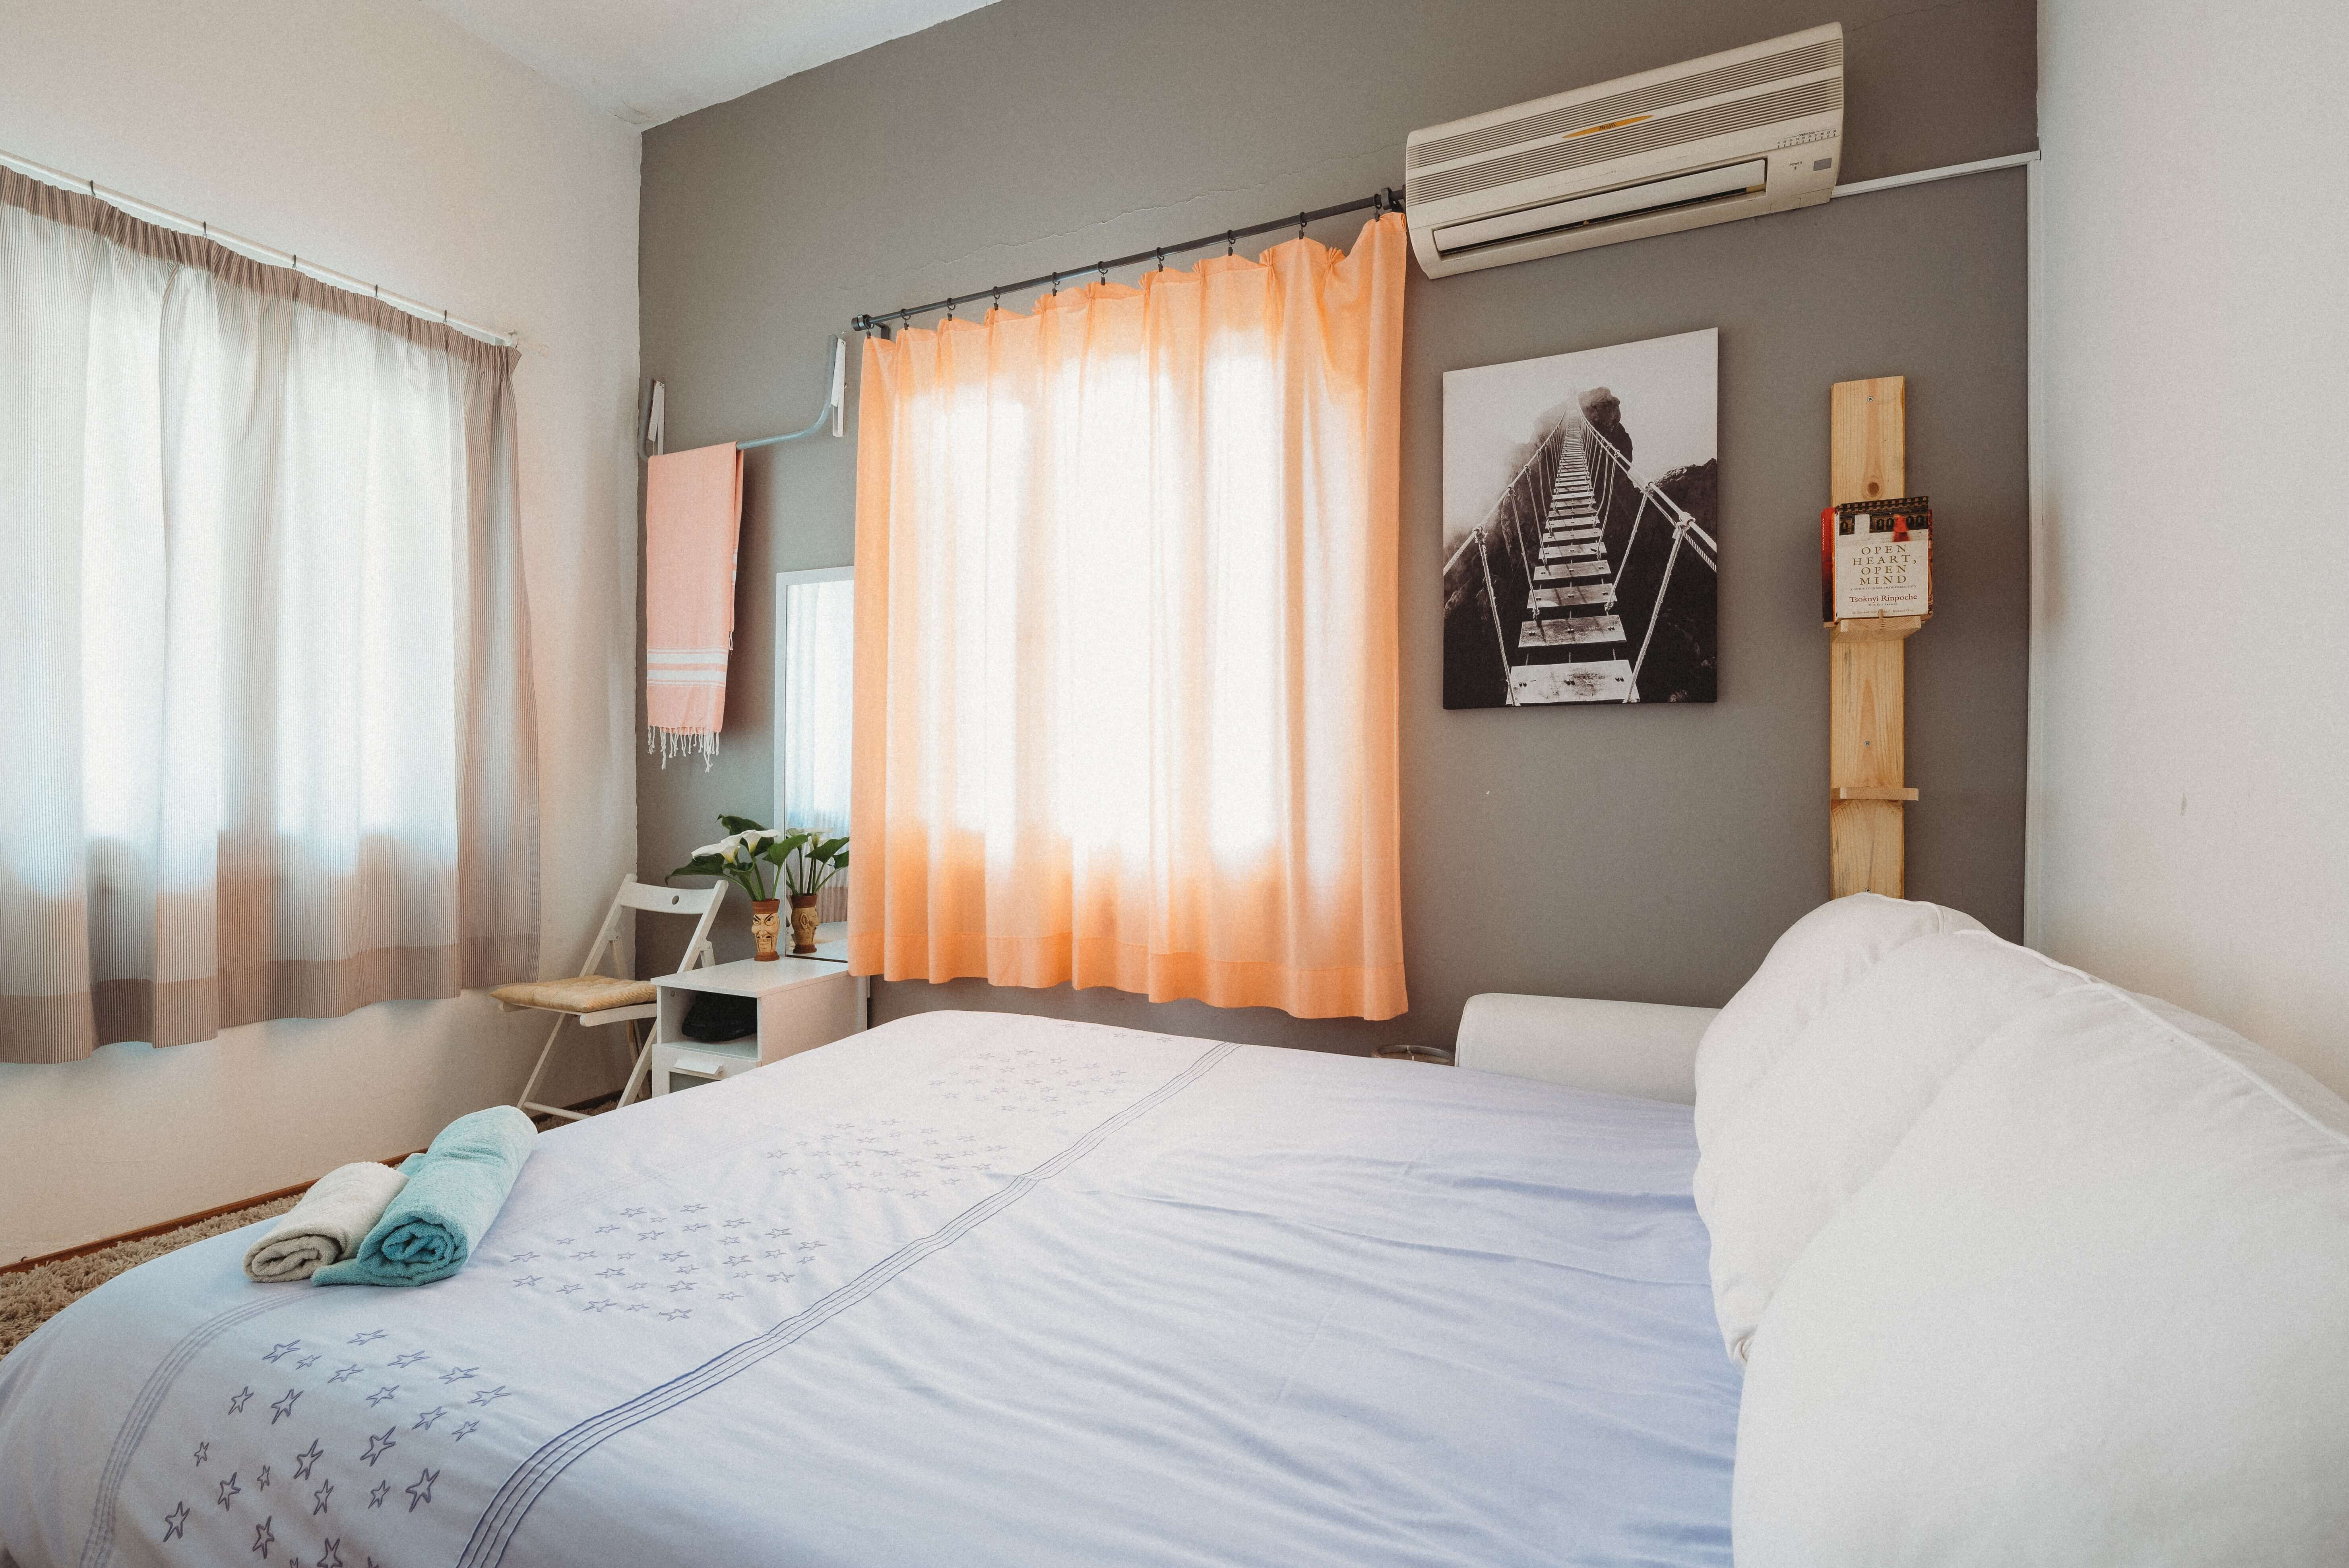 8 Airbnb Decor Ideas to Make Your Vacation Rental Shine